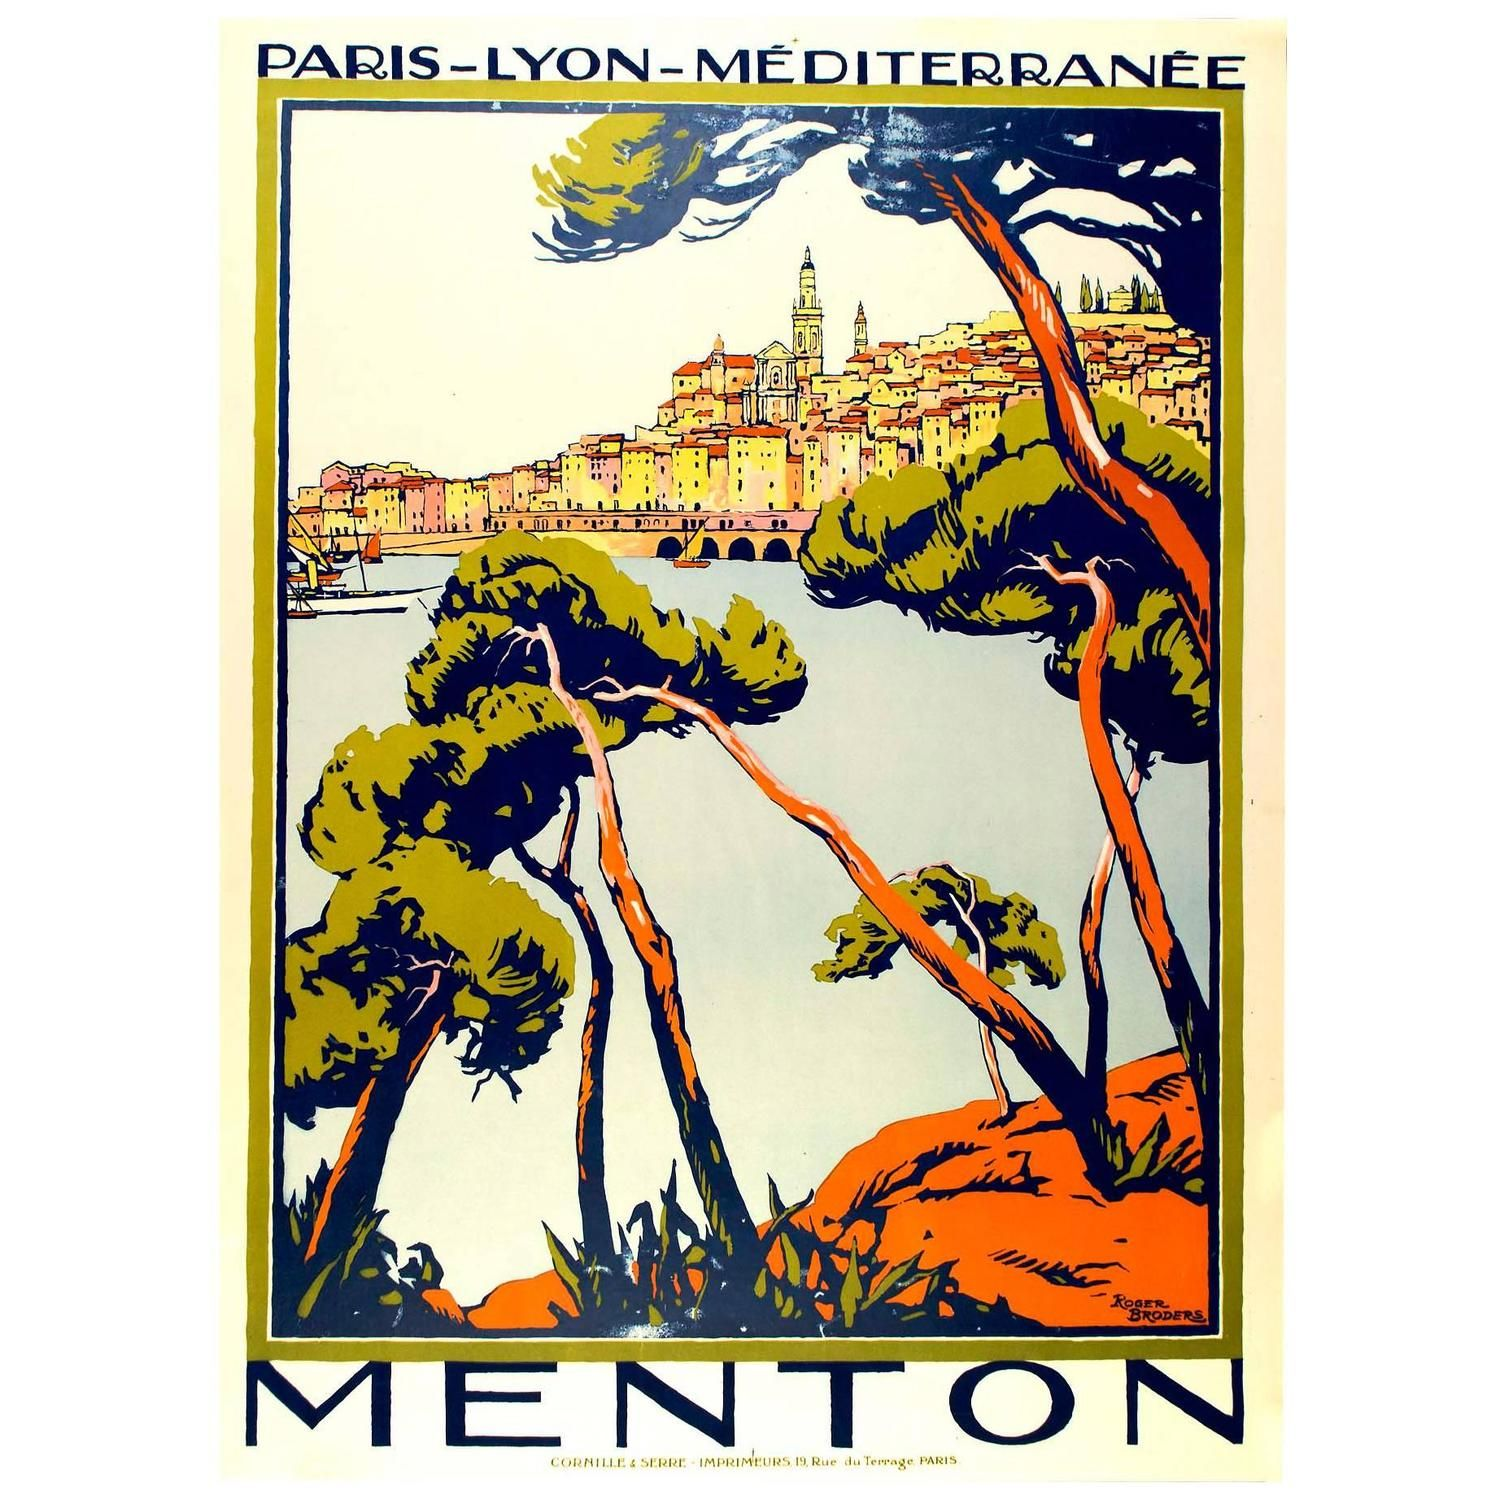 Original Broders Travel Poster for Menton | From a unique collection of antique and modern posters at https://www.1stdibs.com/furniture/wall-decorations/posters/